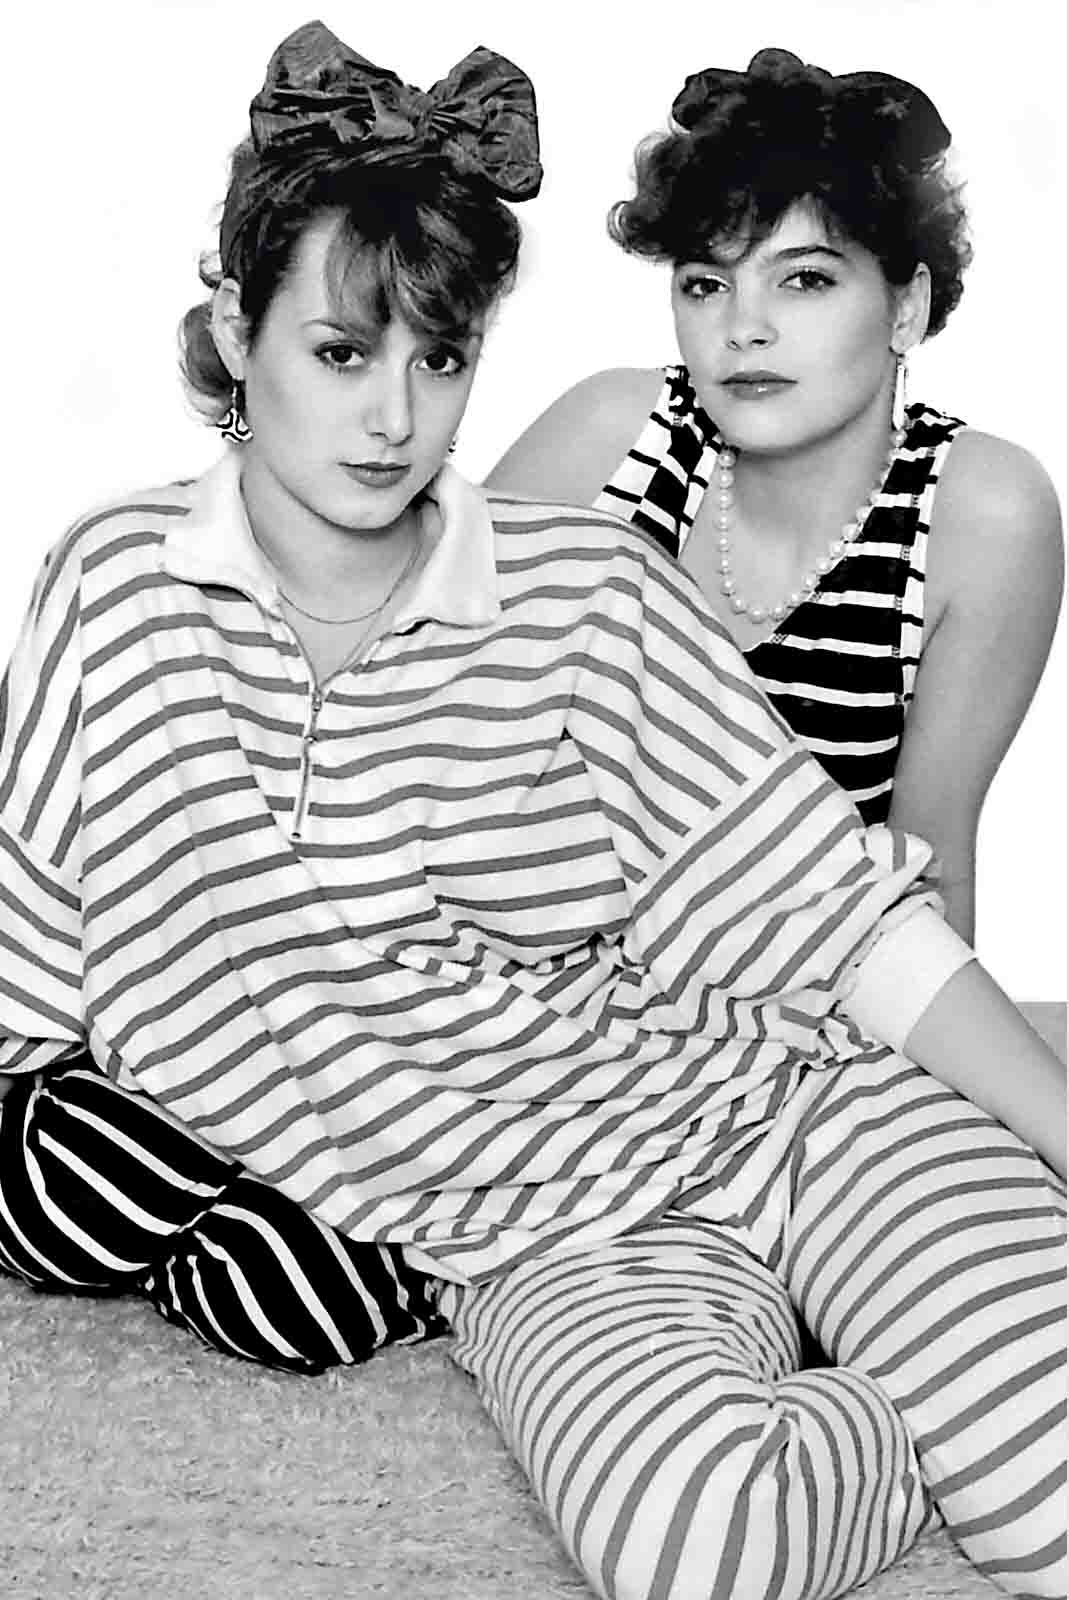 My picture of two beautiful girls from Tadworth at Epsom Photography Studio Surrey.